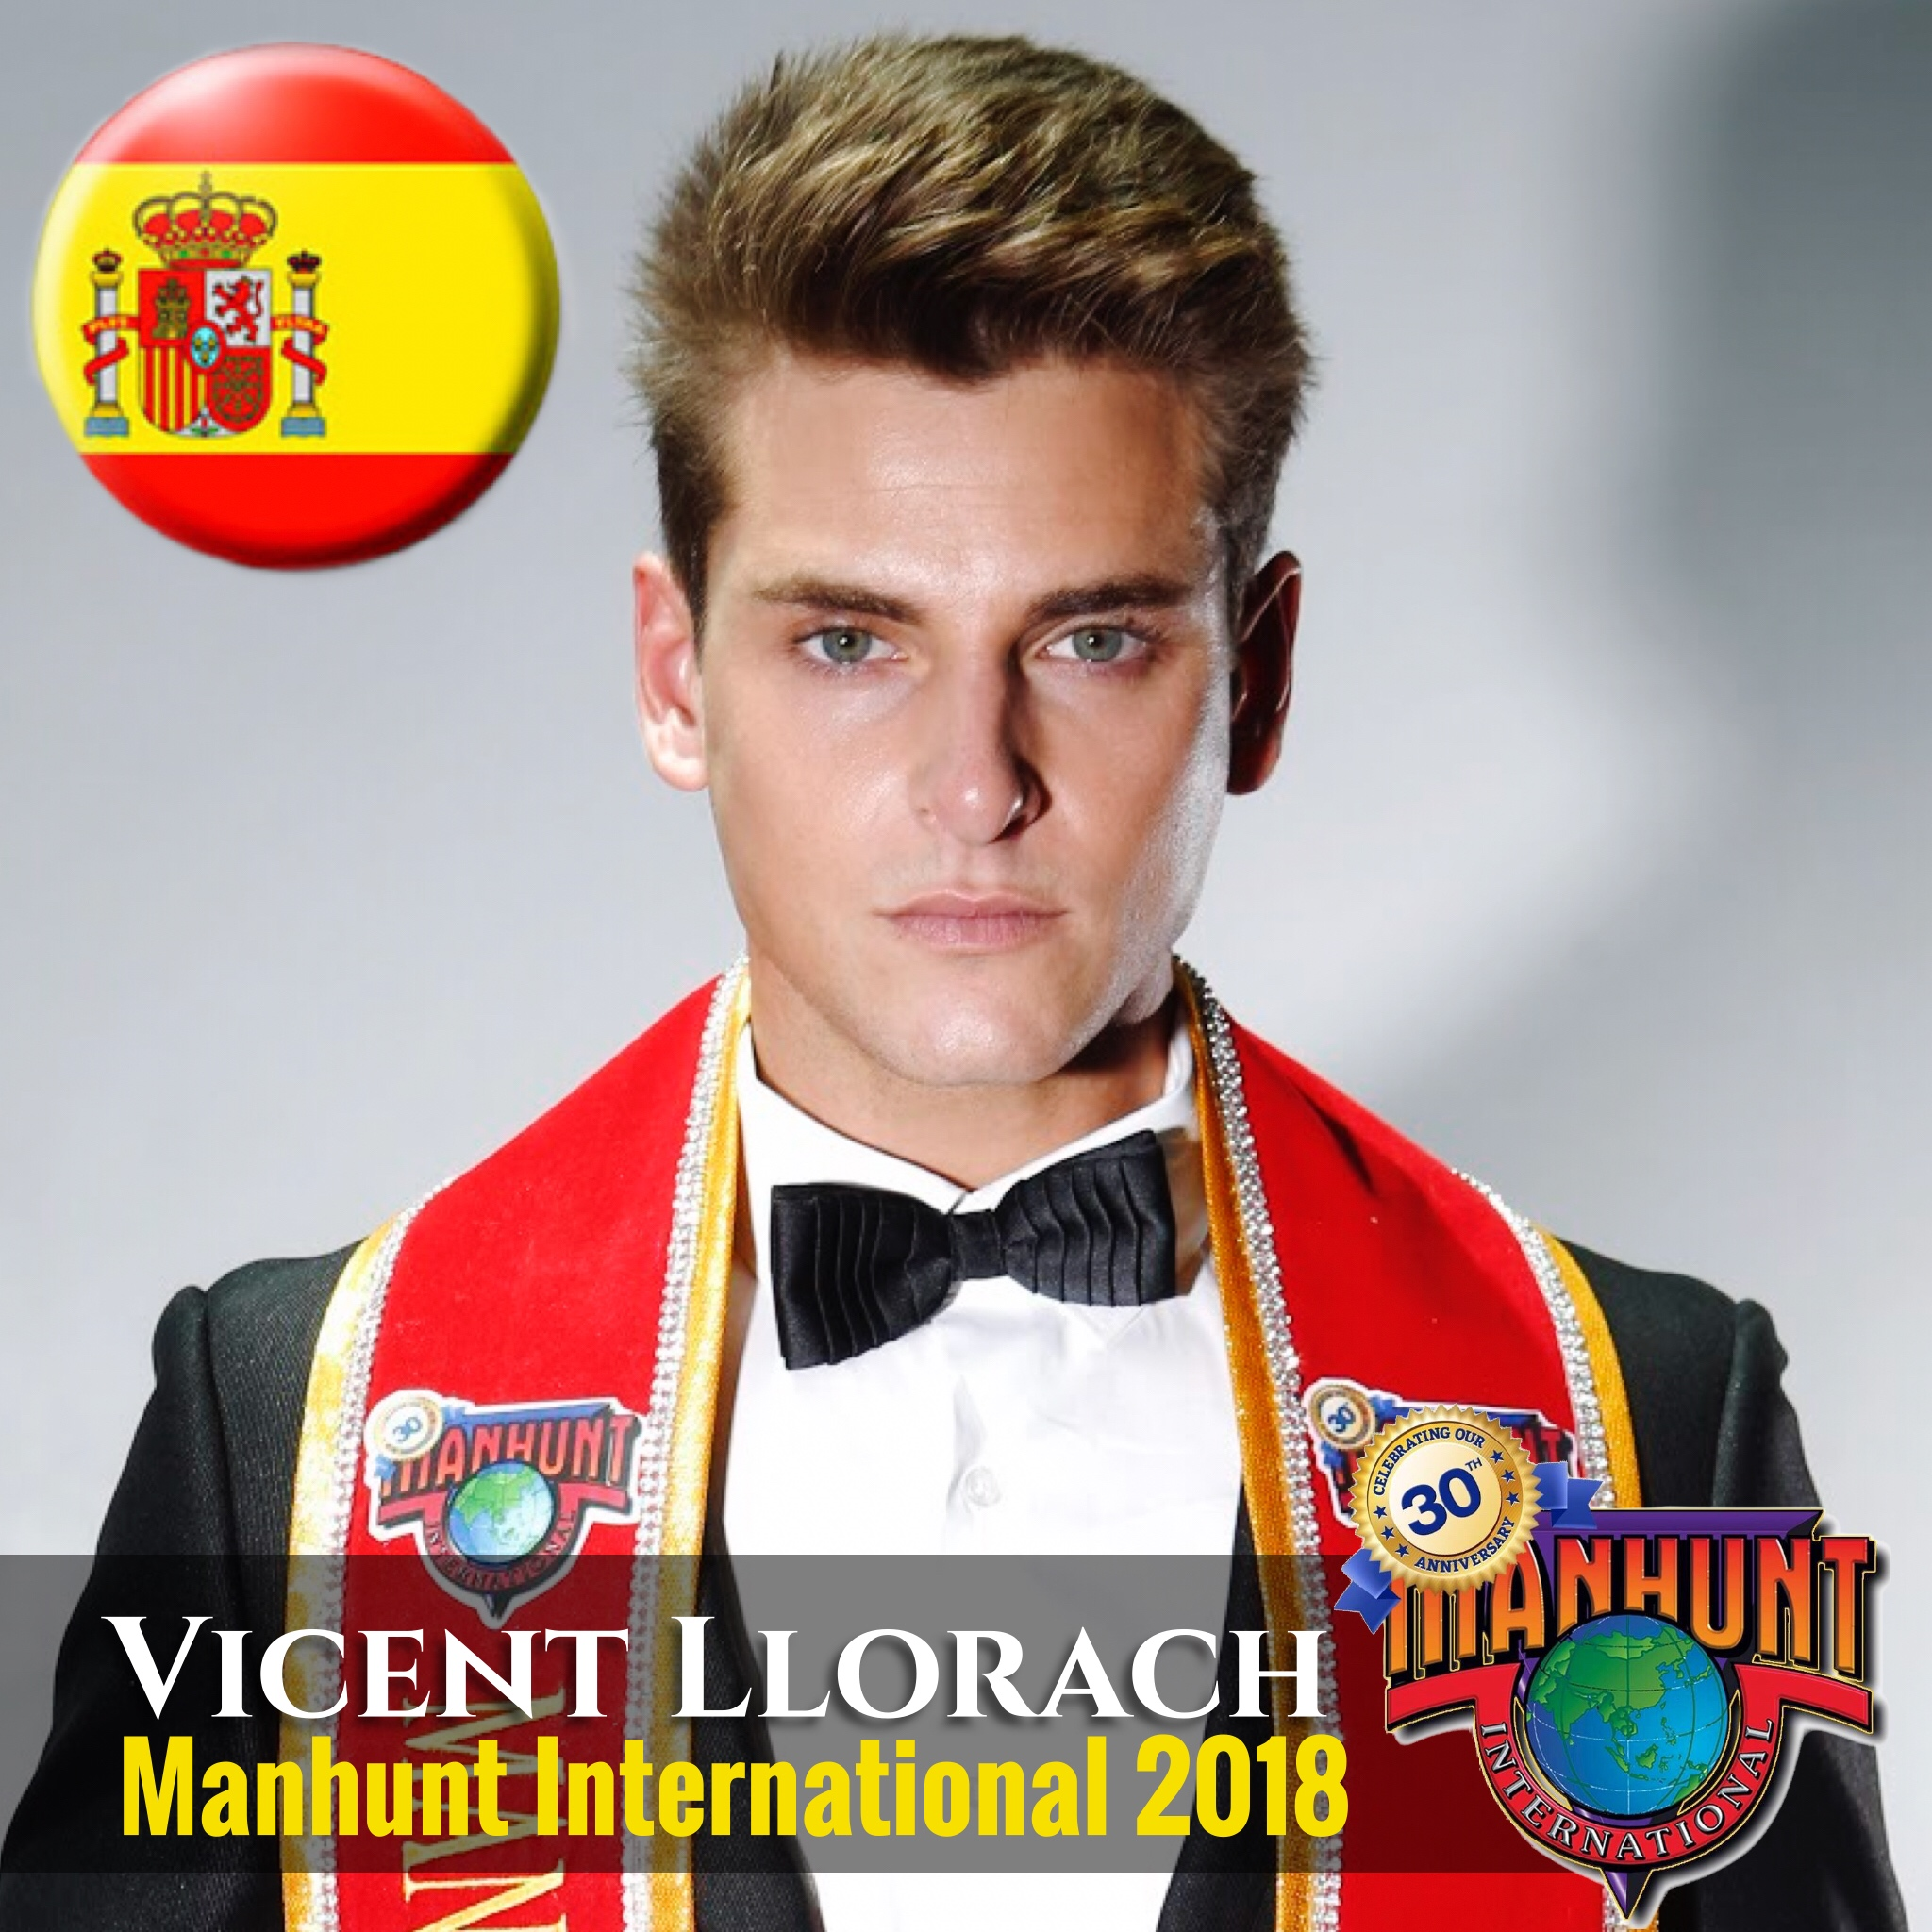 vicent llorach, manhunt international 2018. - Página 2 Enlight4853